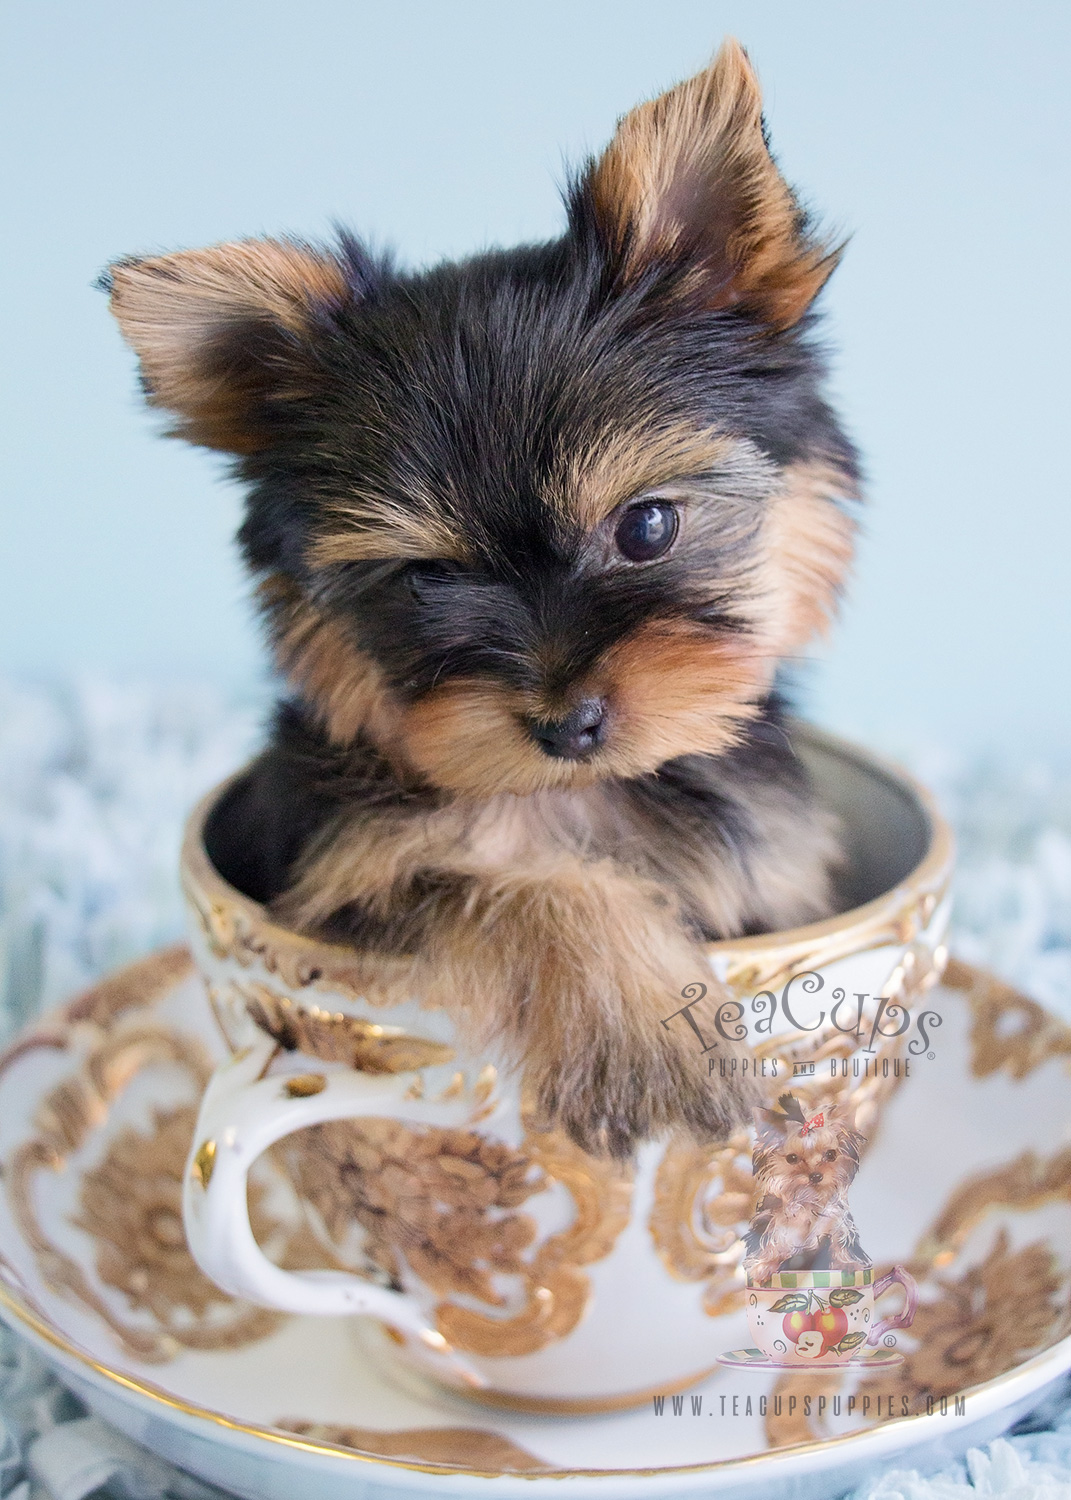 Teacup Yorkies at Teacups Puppies and Boutique